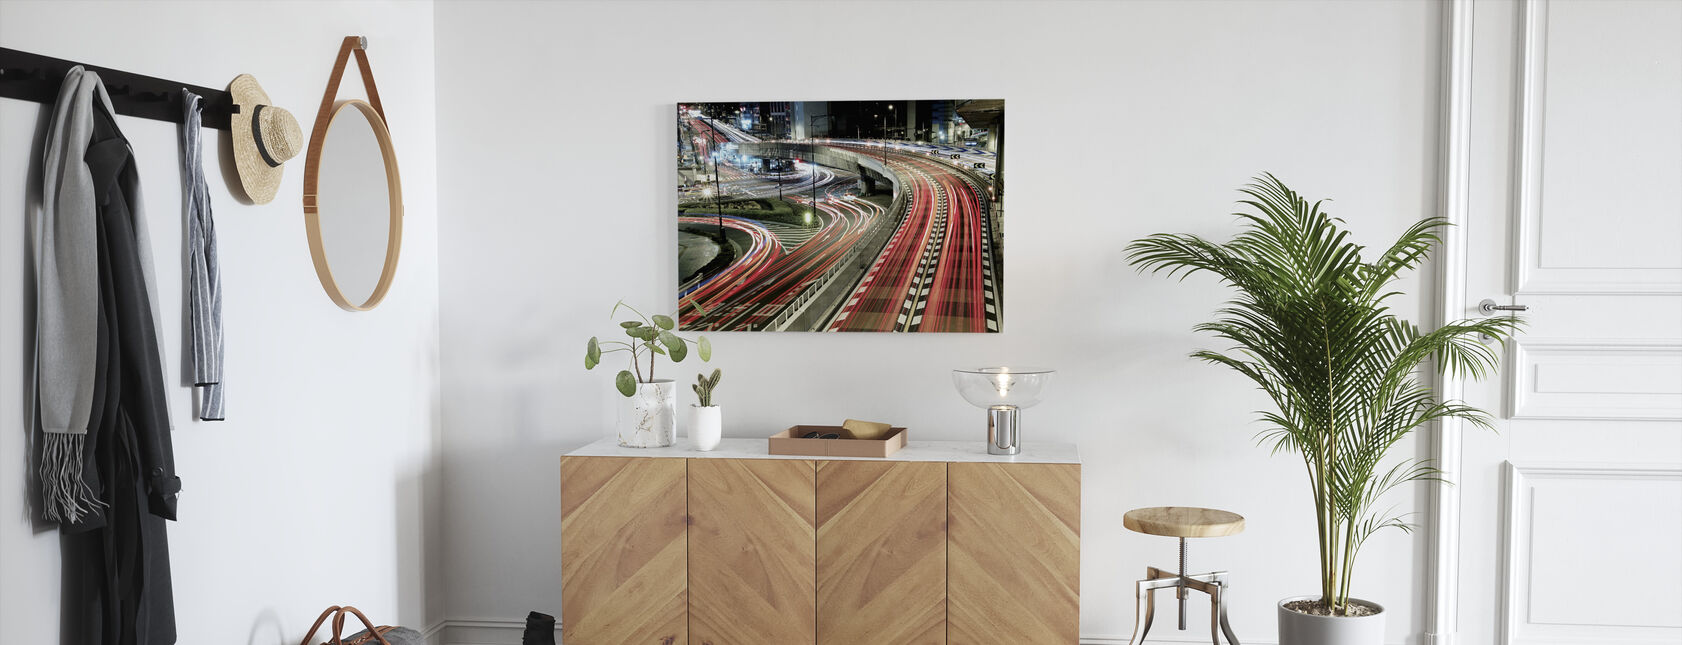 Chaotic traffic - Canvas print - Hallway